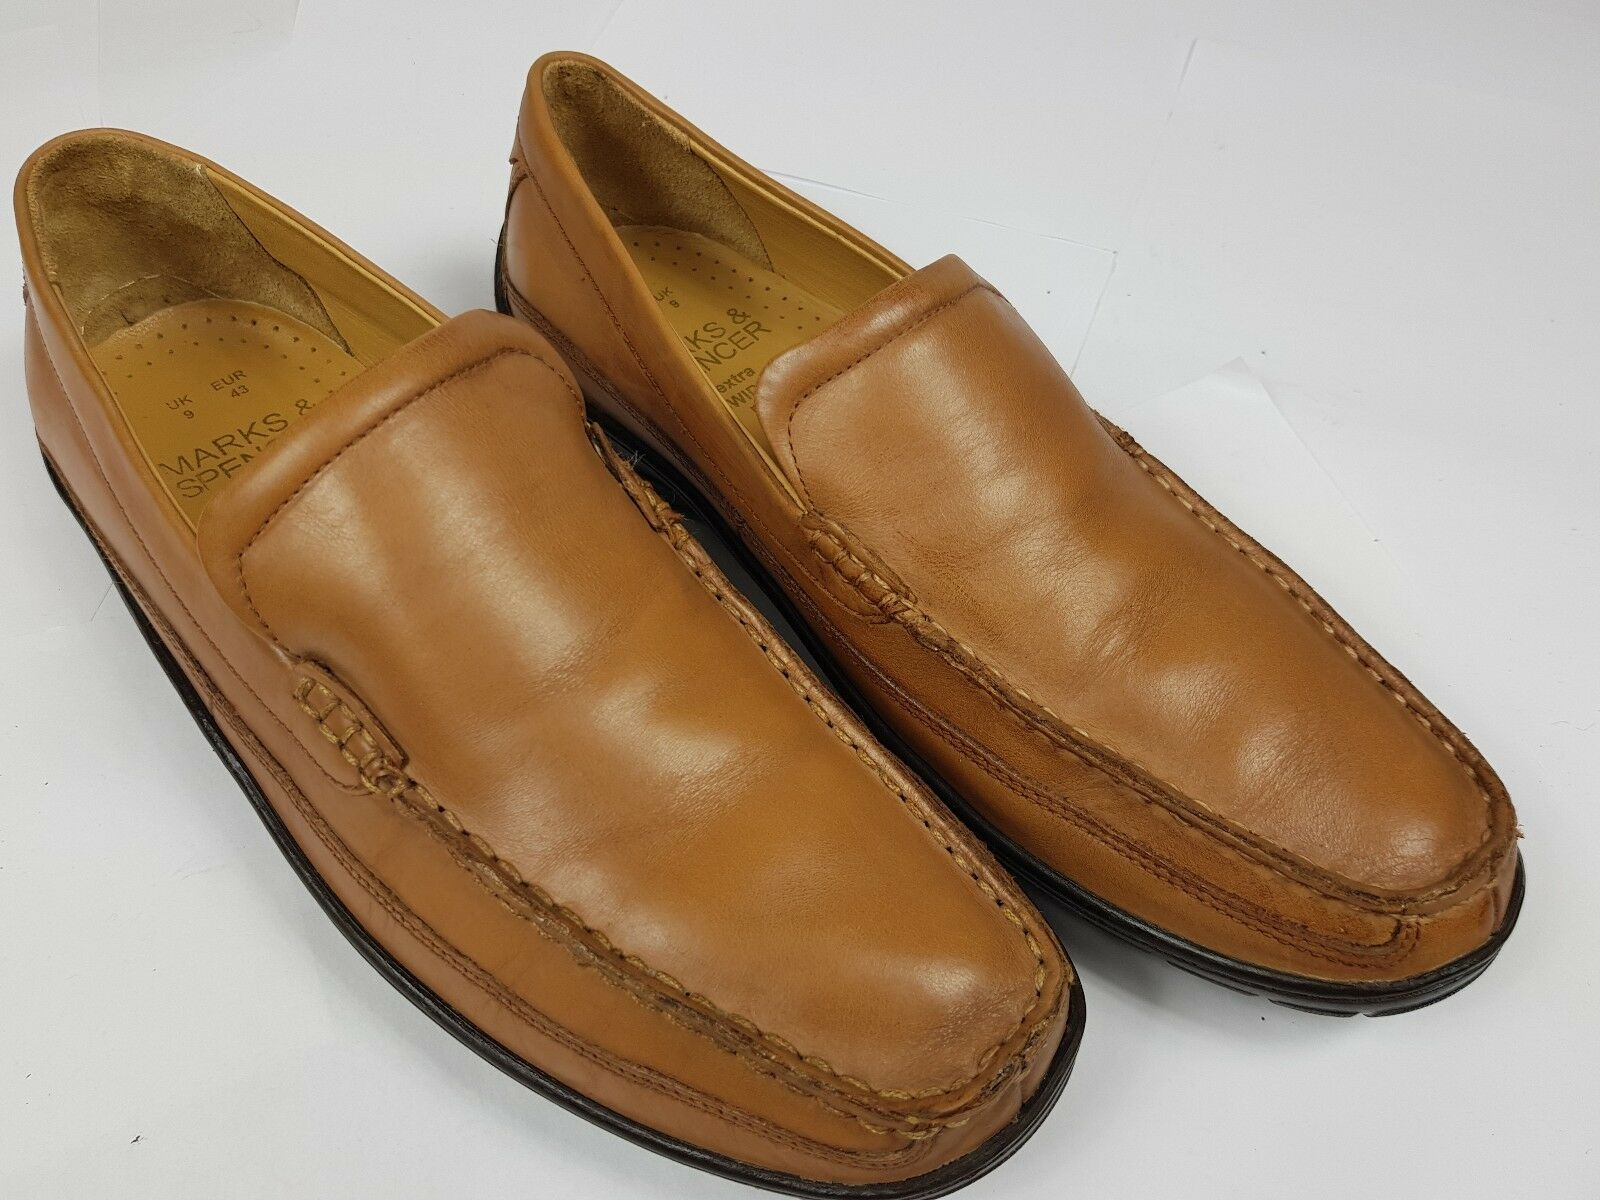 M&S Loafers Mens Casual Tan Brown Sip On Loafers M&S Extra Wide - Pre-worn 140c80